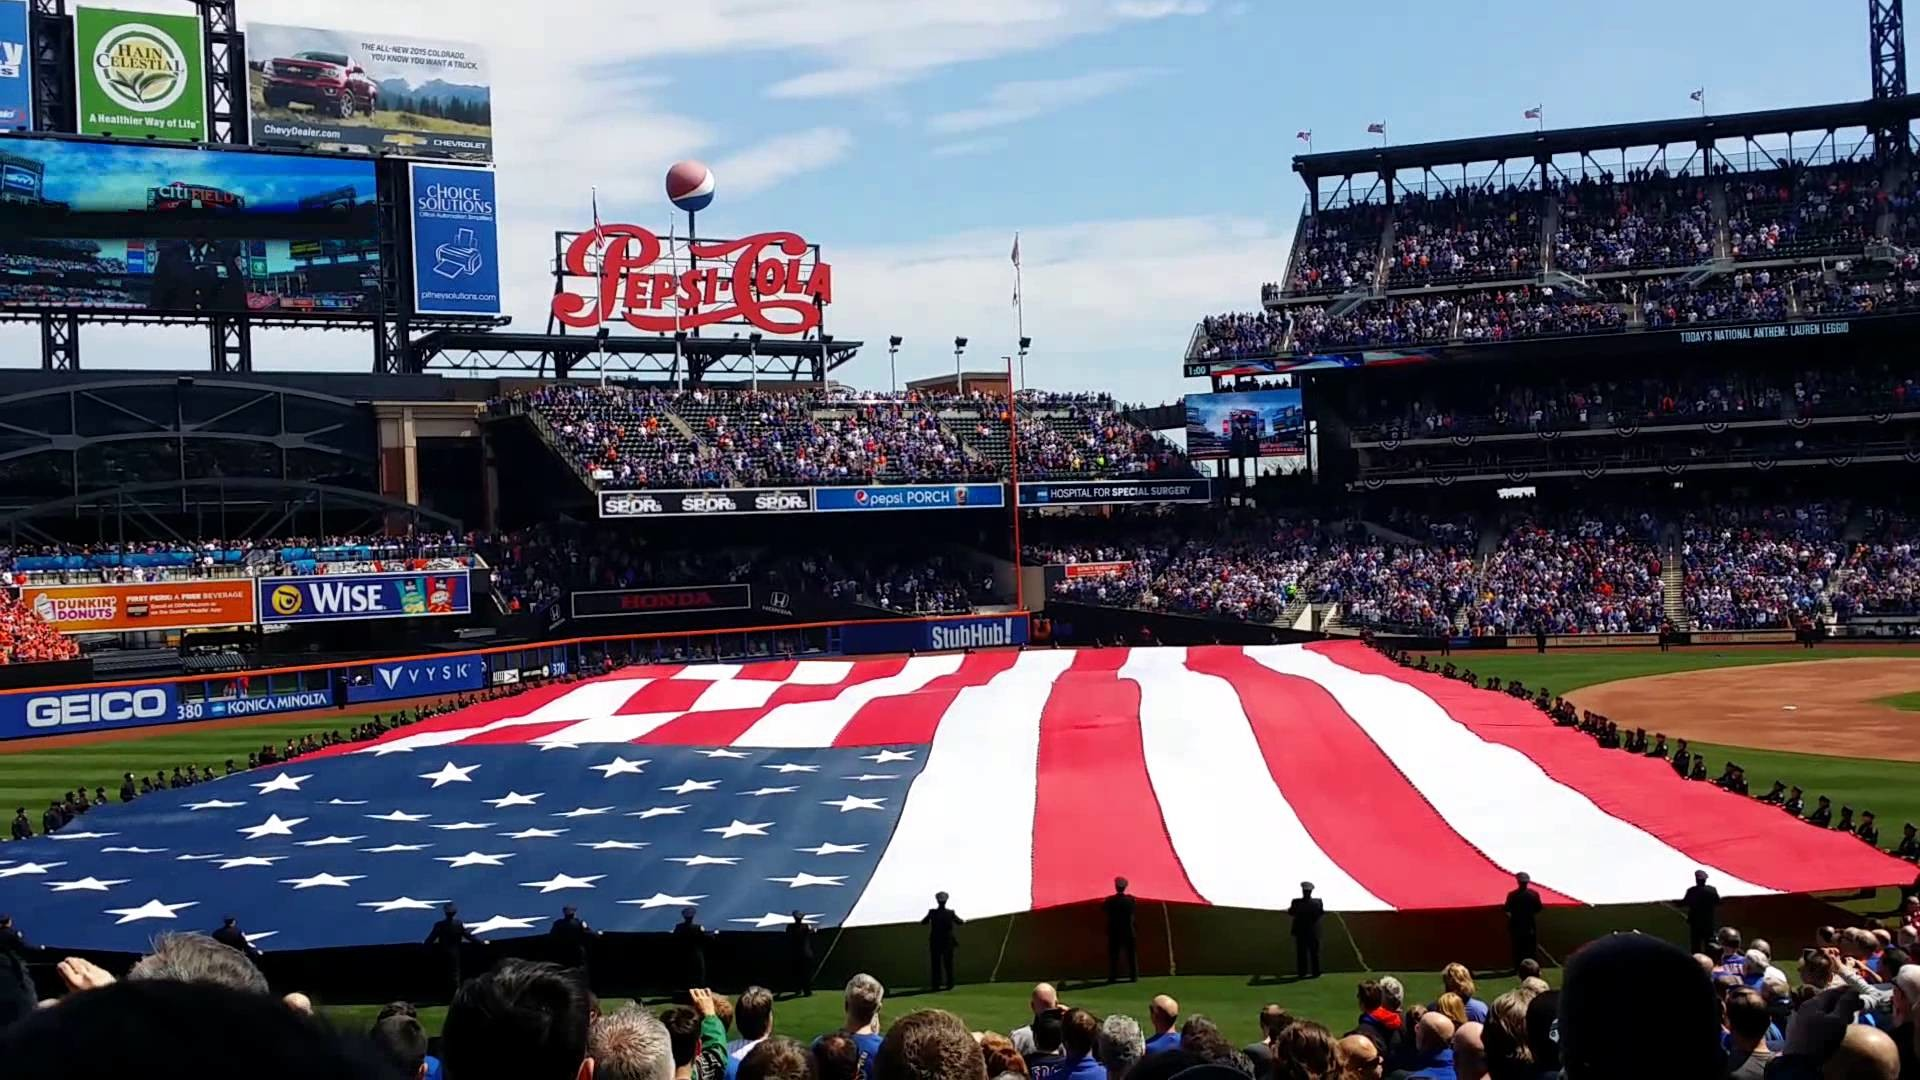 New York Mets 2015 opening day ceremony